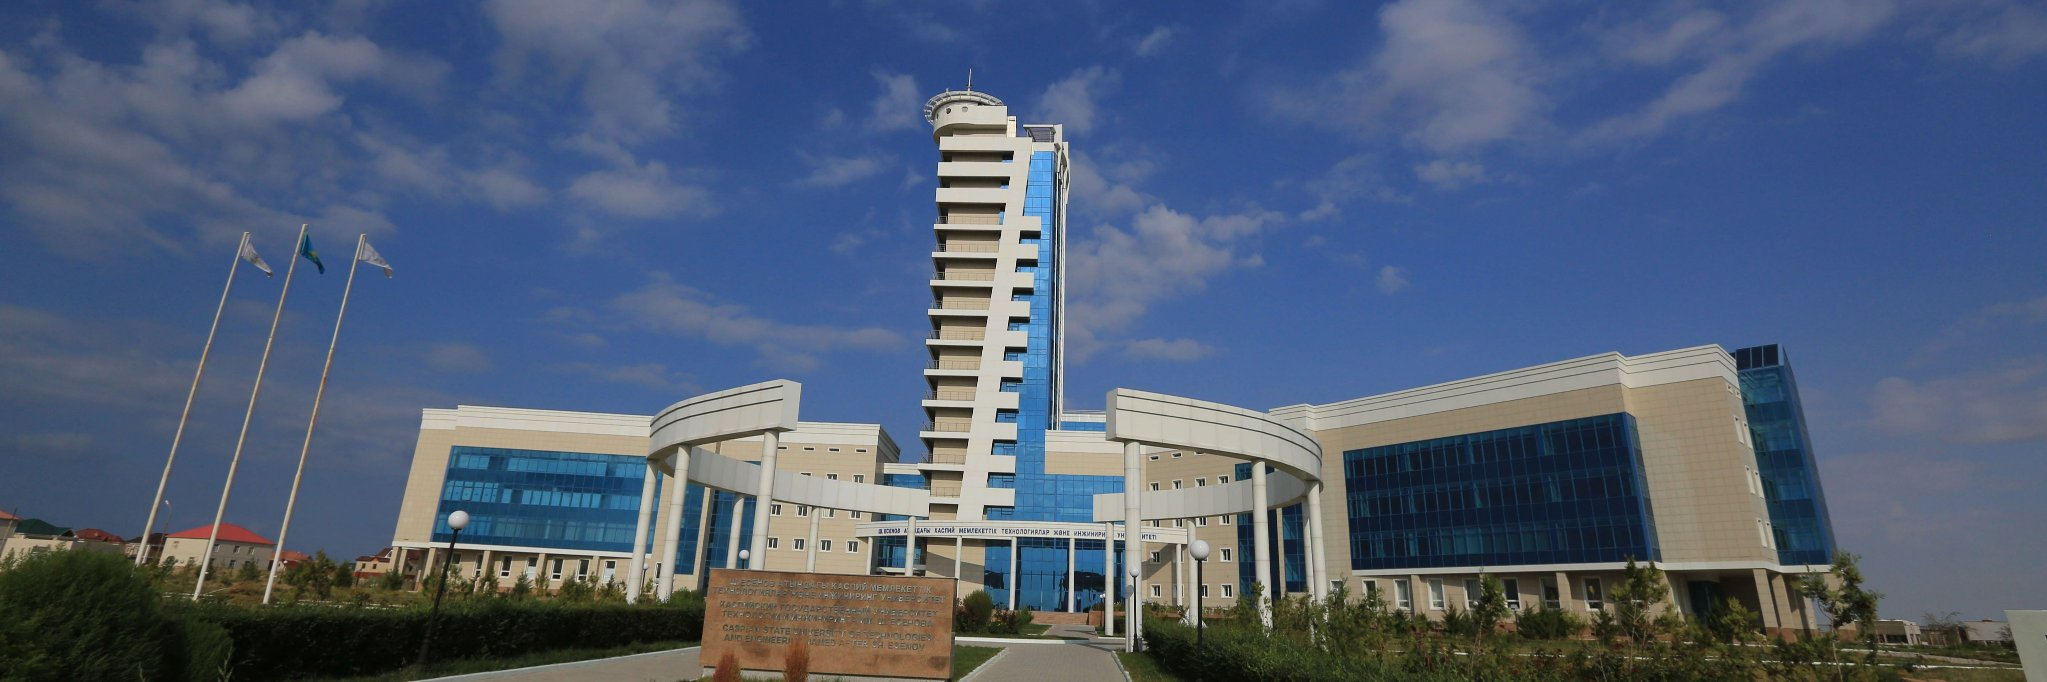 Caspian State University of Technologies and Engineering's official Twitter account